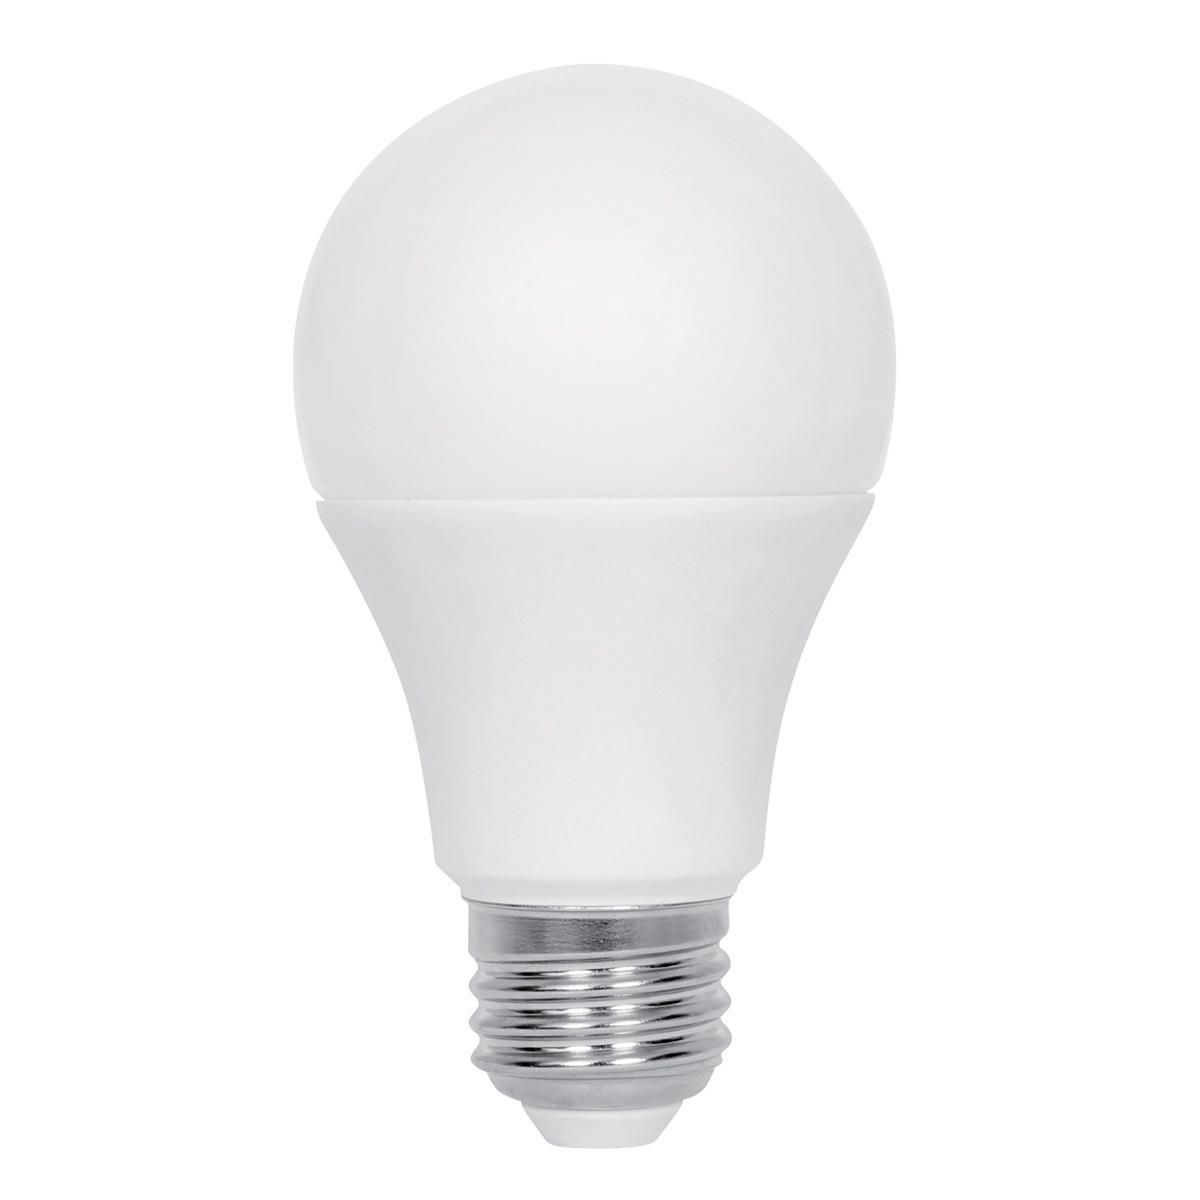 Led Blubs: Great Value 10W A19 Non Dimmable Daylight LED Bulb